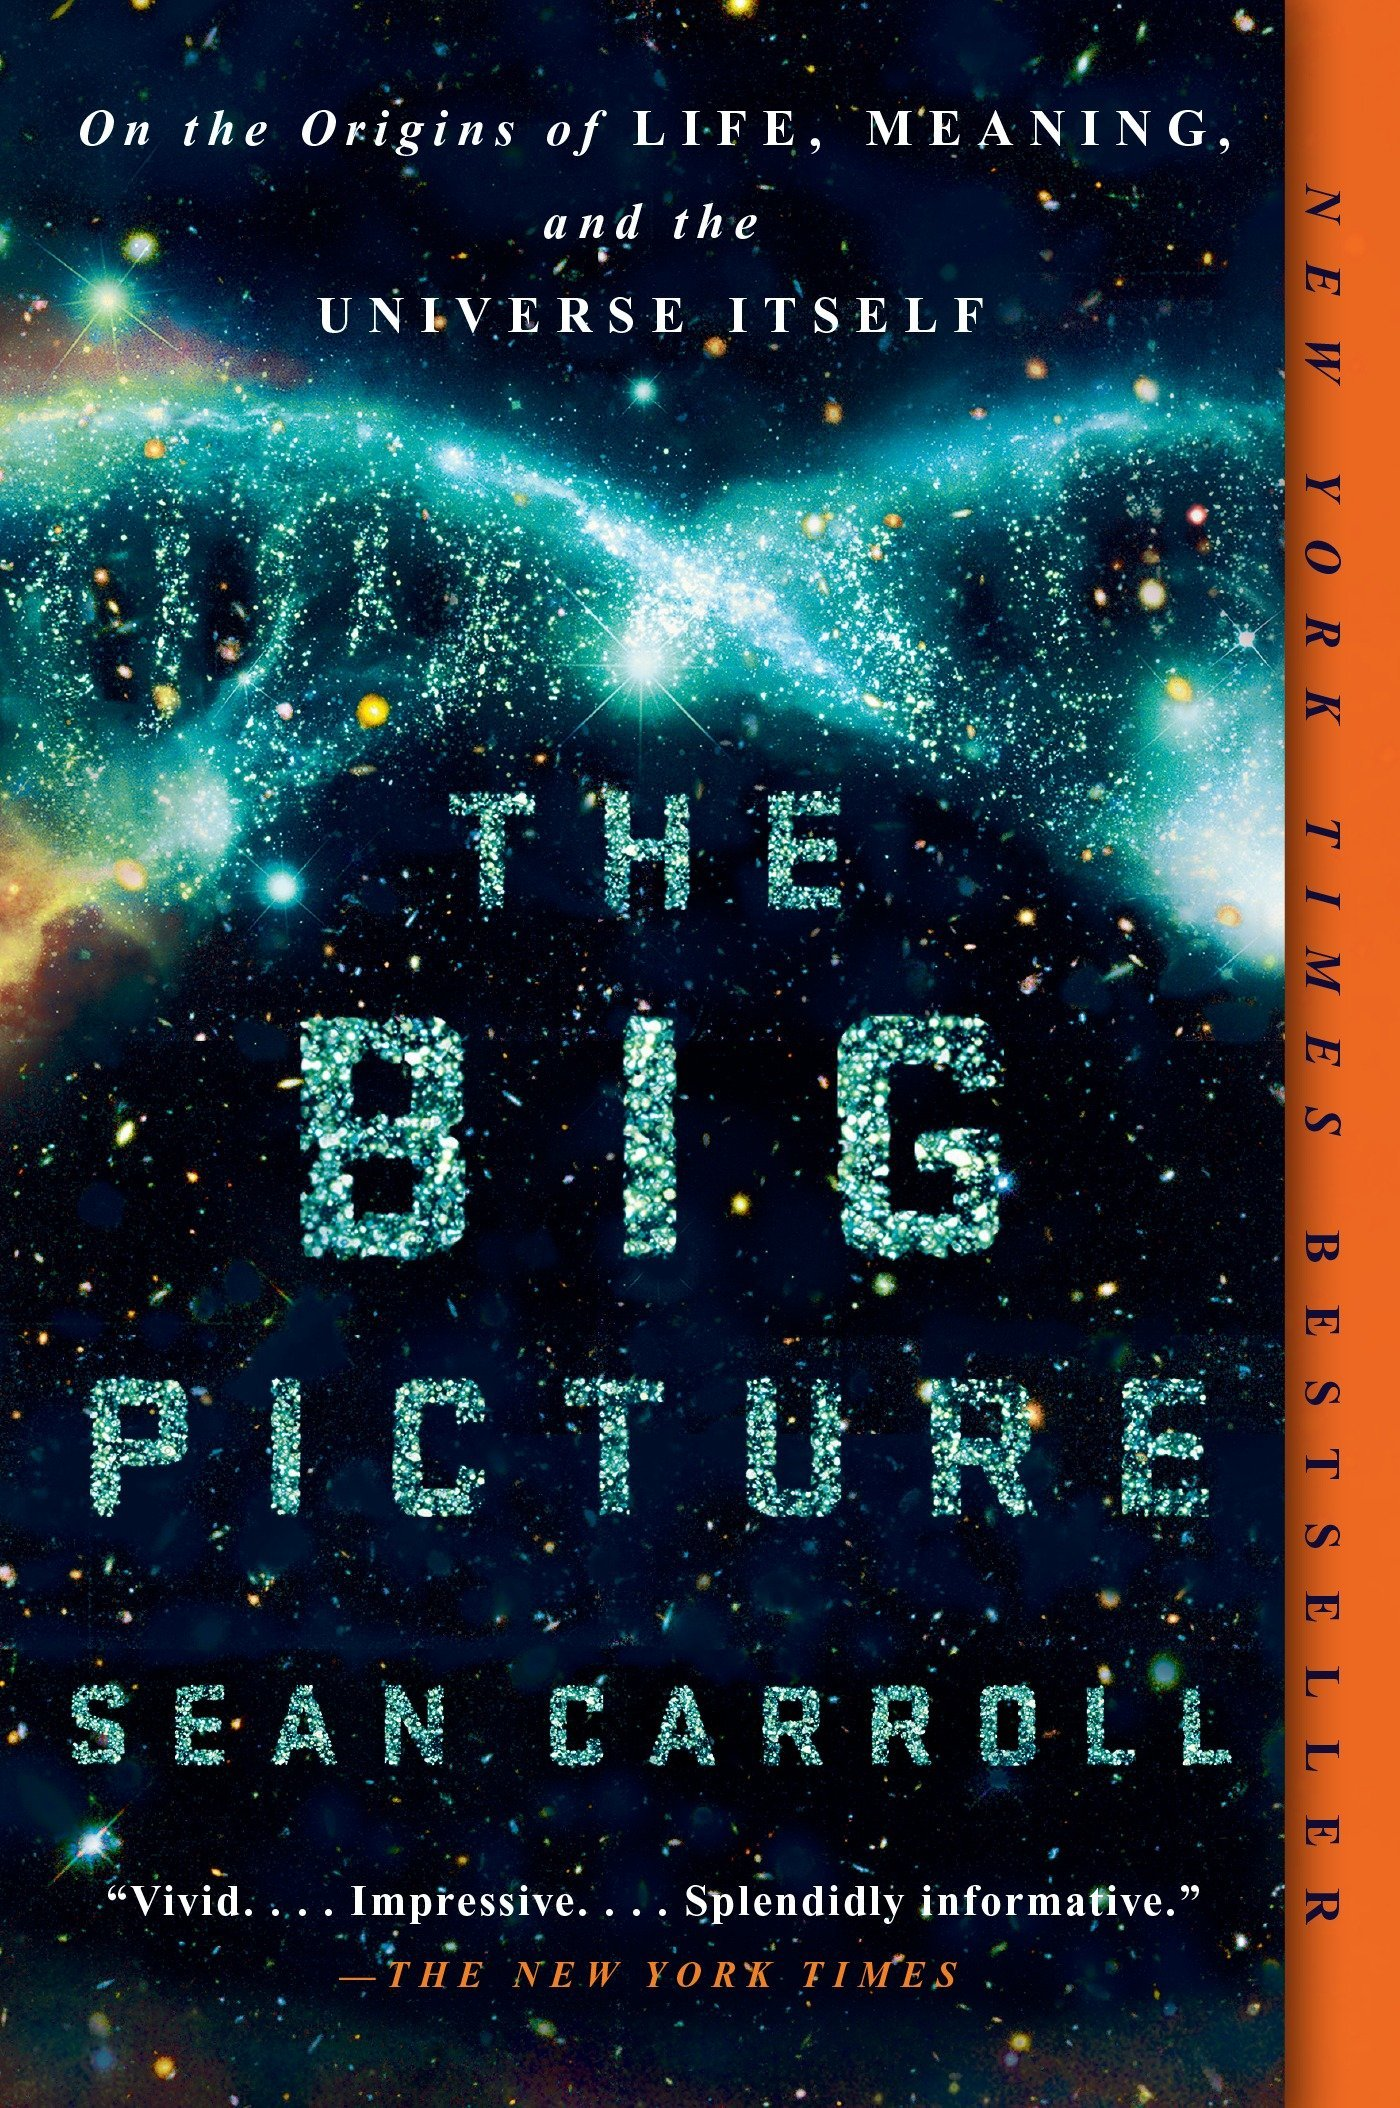 Essay English Example The Big Picture On The Origins Of Life Meaning And The Universe Itself  Sean Carroll  Amazoncom Books Buy An Essay Paper also English Essays For Students The Big Picture On The Origins Of Life Meaning And The Universe  Paper Vs Essay